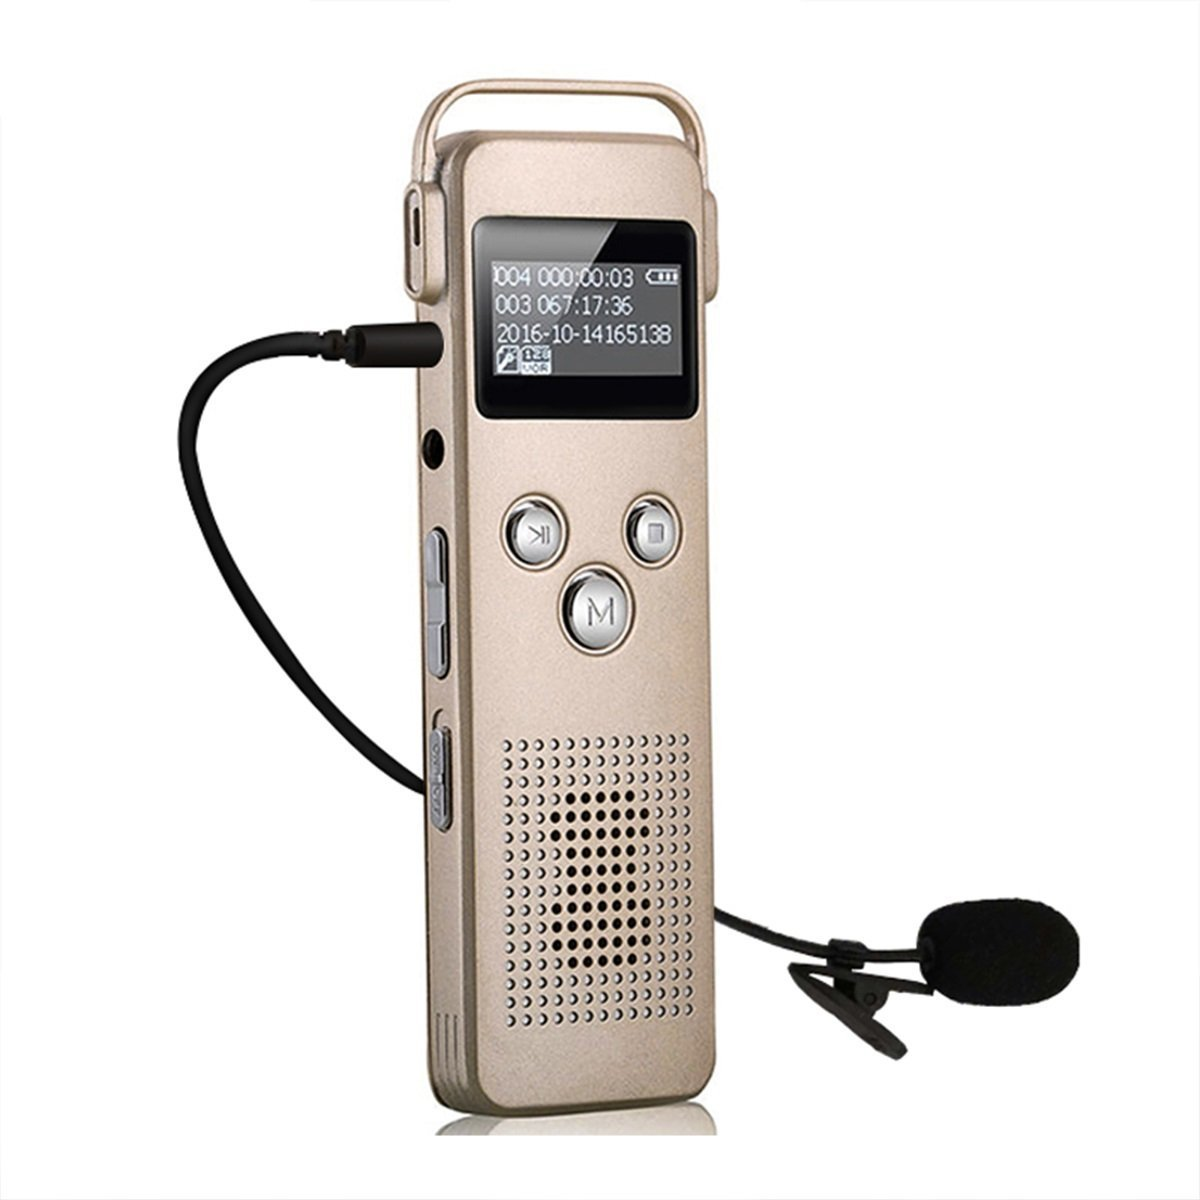 Noyazu A20 HD Digital Voice Recorder MP3 Player 8GB Sound Voice Activated Recorder Dictaphone Metal Casing,Double Microphone,Digital Voice Recorders for Lectures